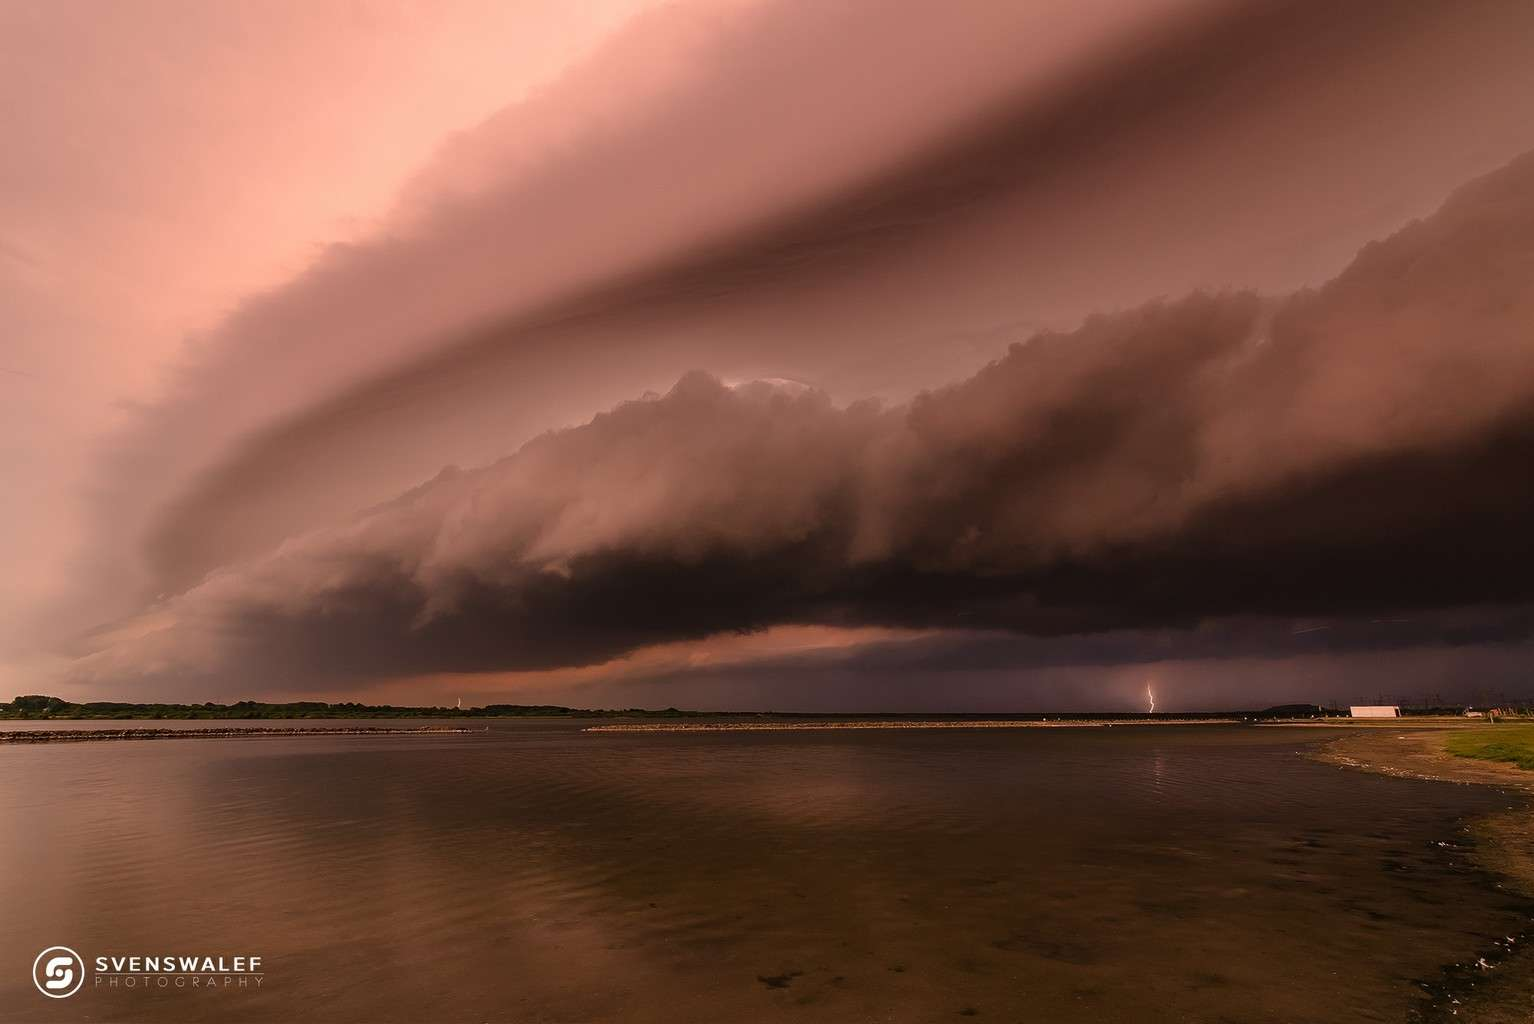 Shelfcloud this morning at the beach of Rockanje (Dutch coast) in the Netherlands